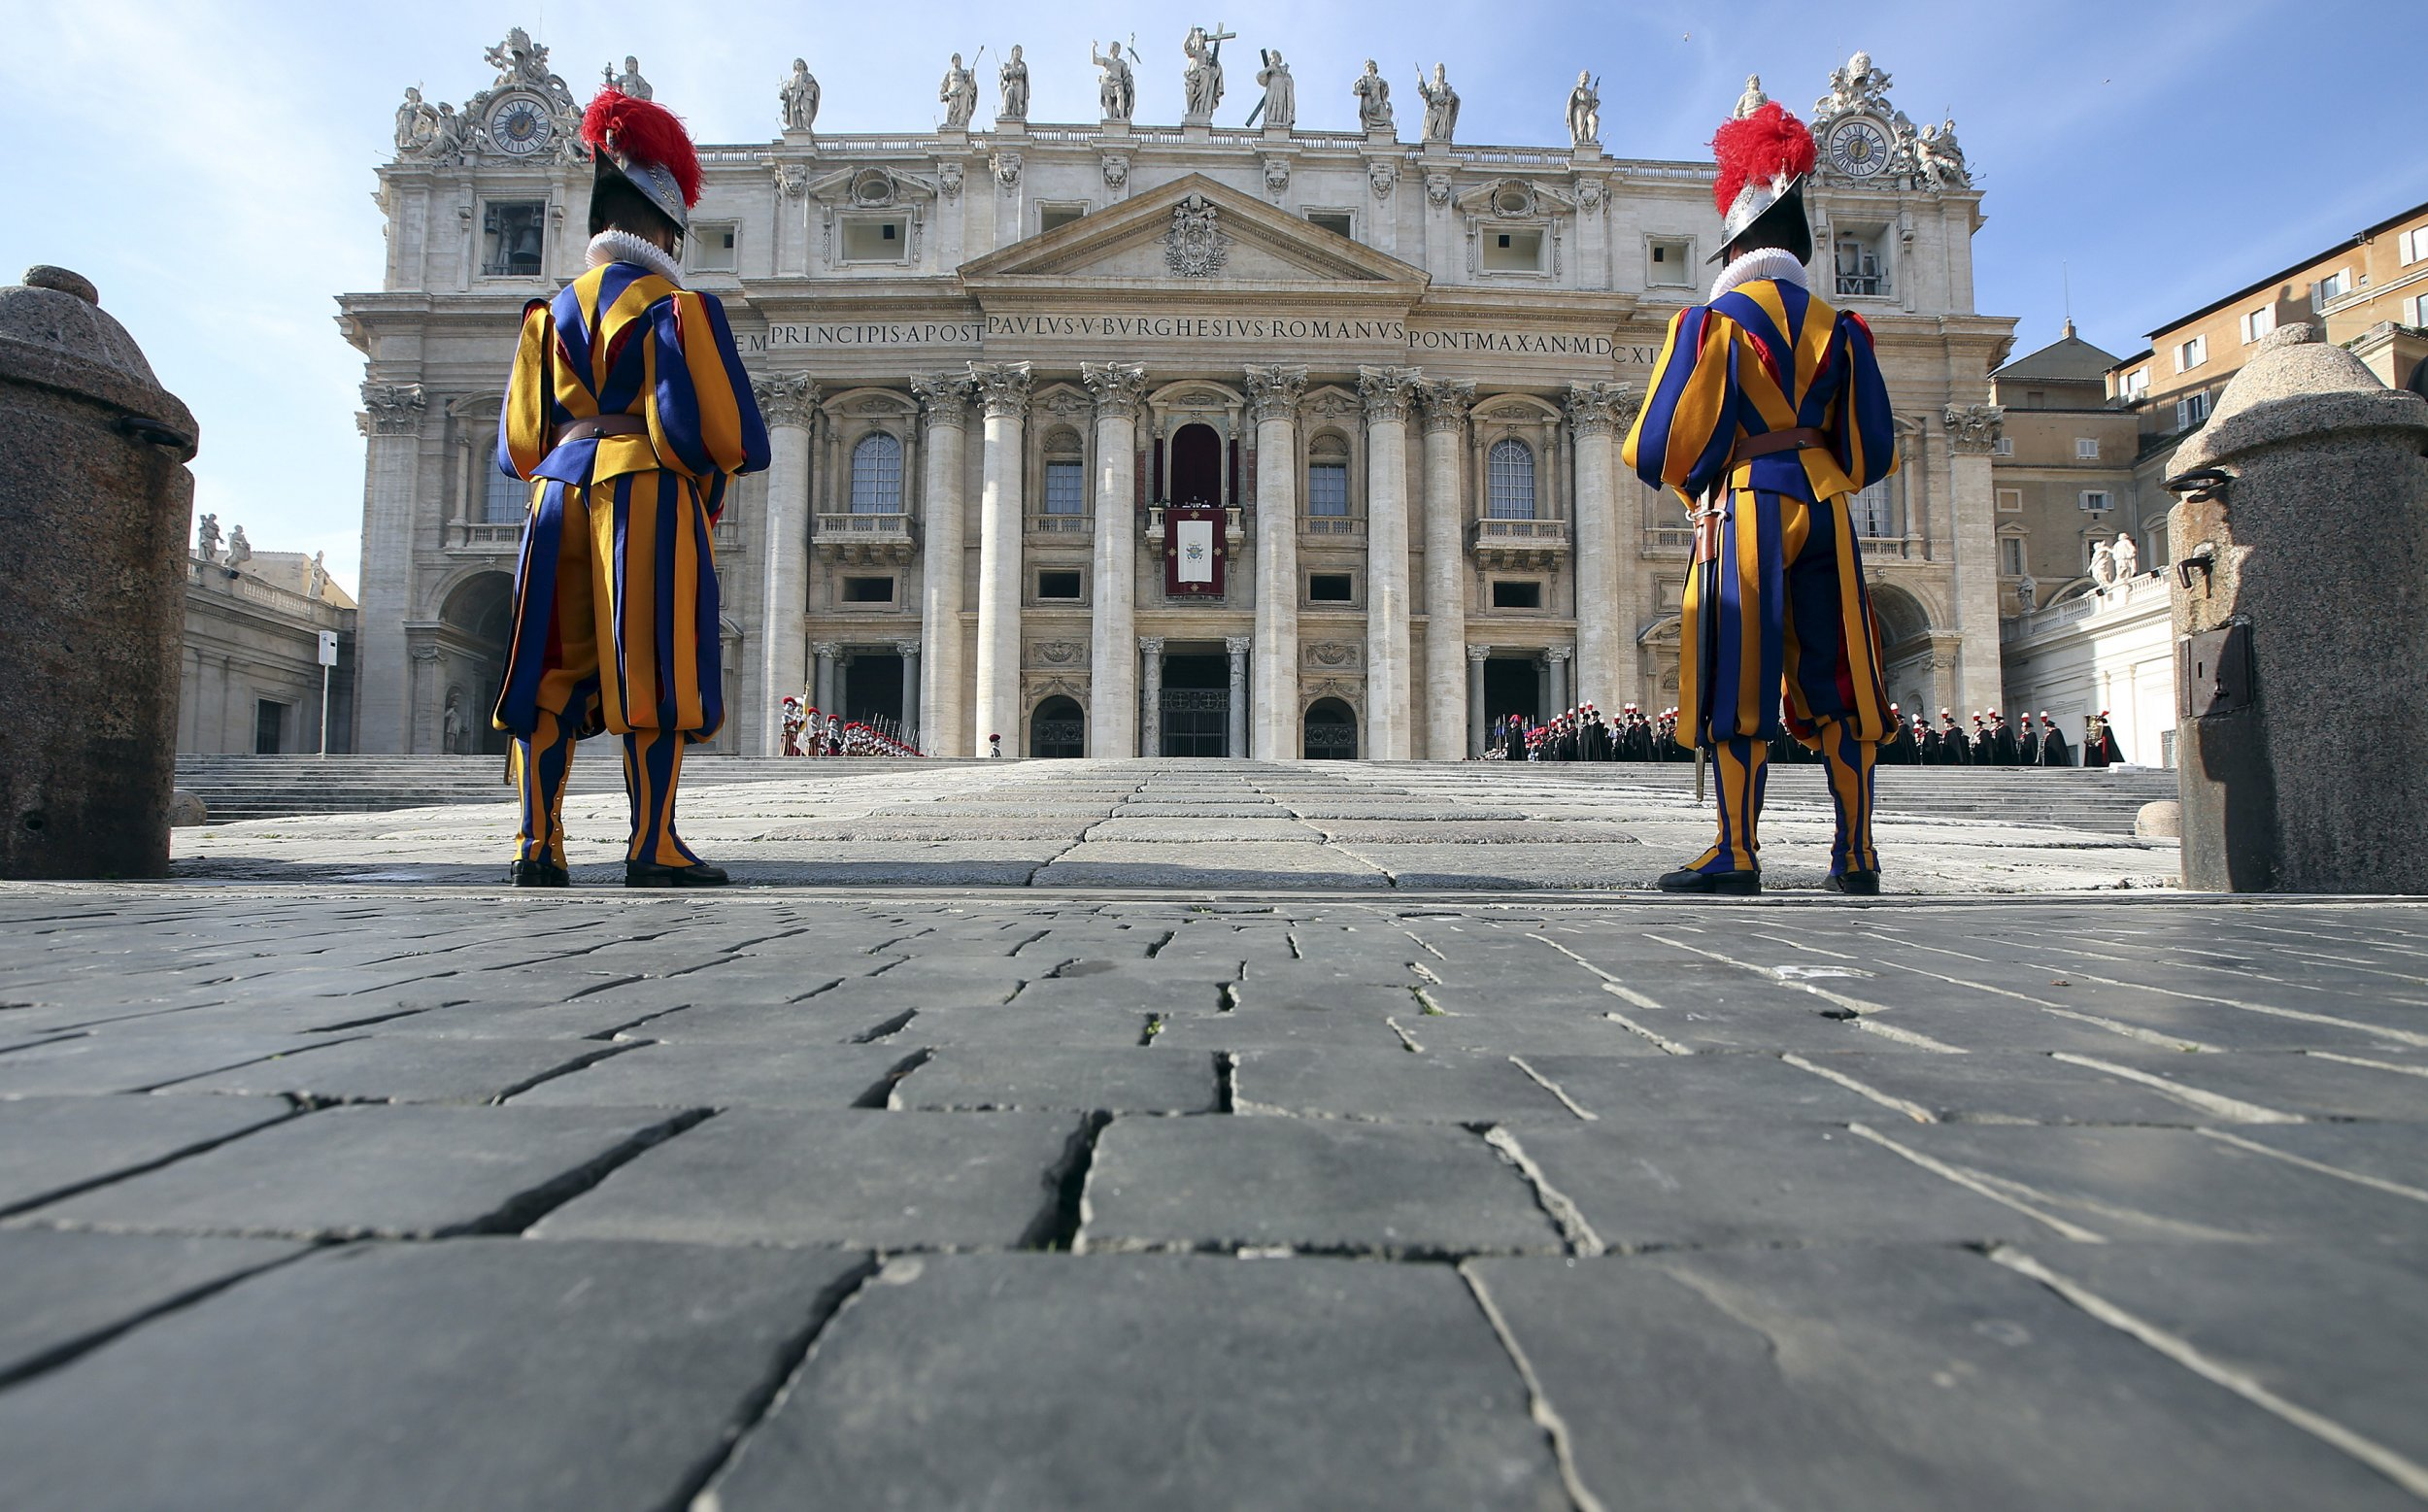 The Pope at the Vatican